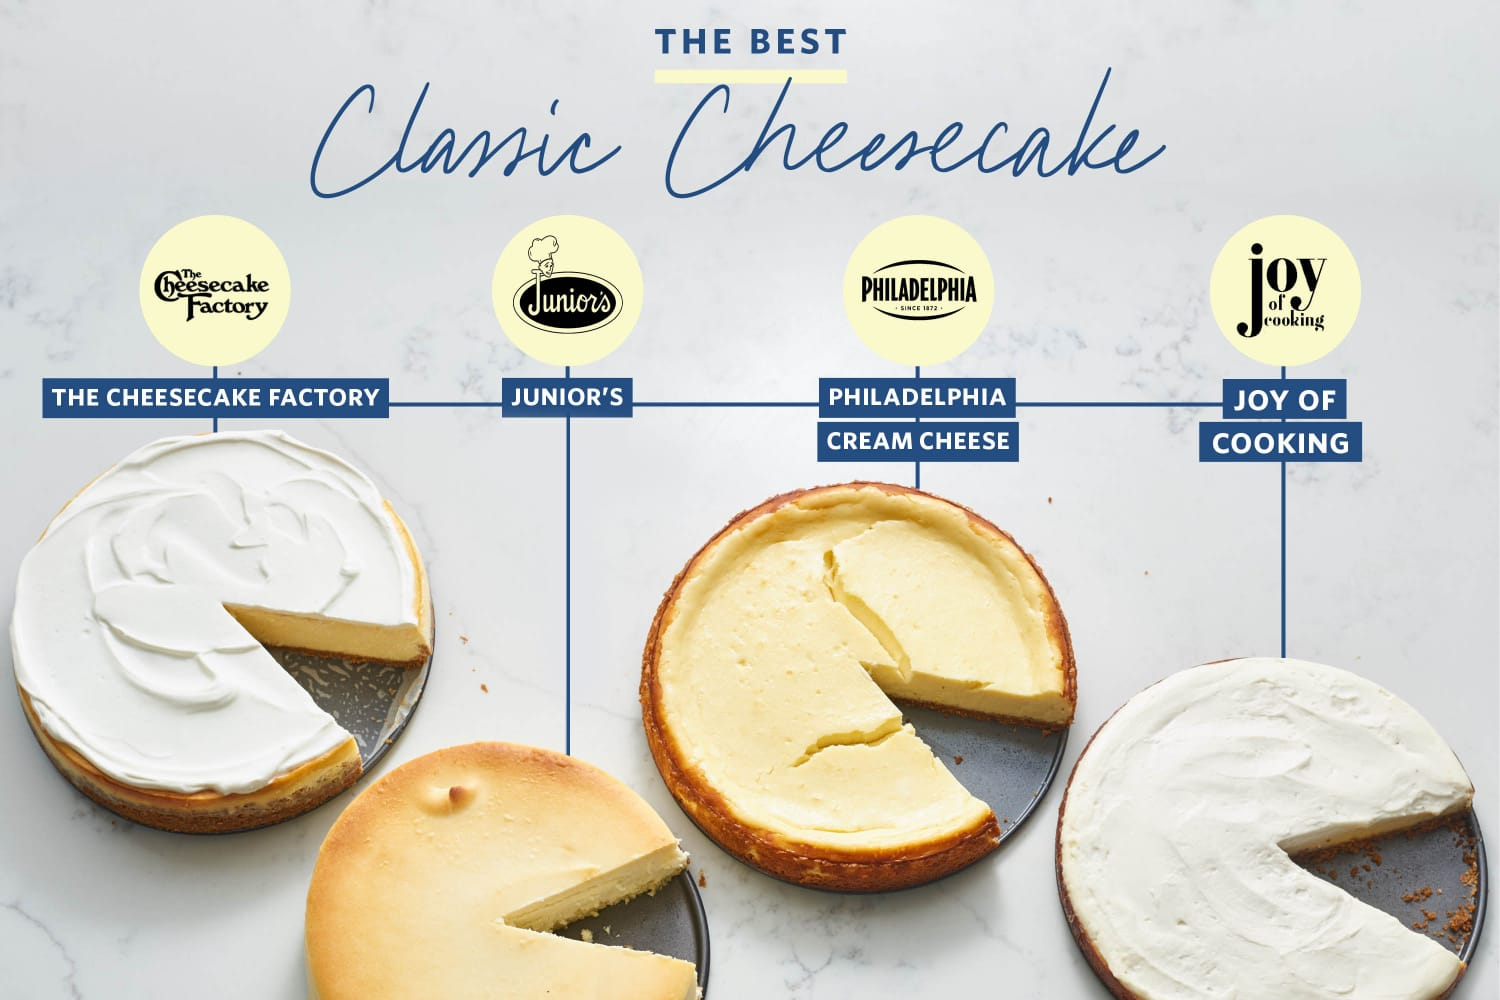 We Tested 4 Famous Cheesecake Recipes and Found a Clear Winner